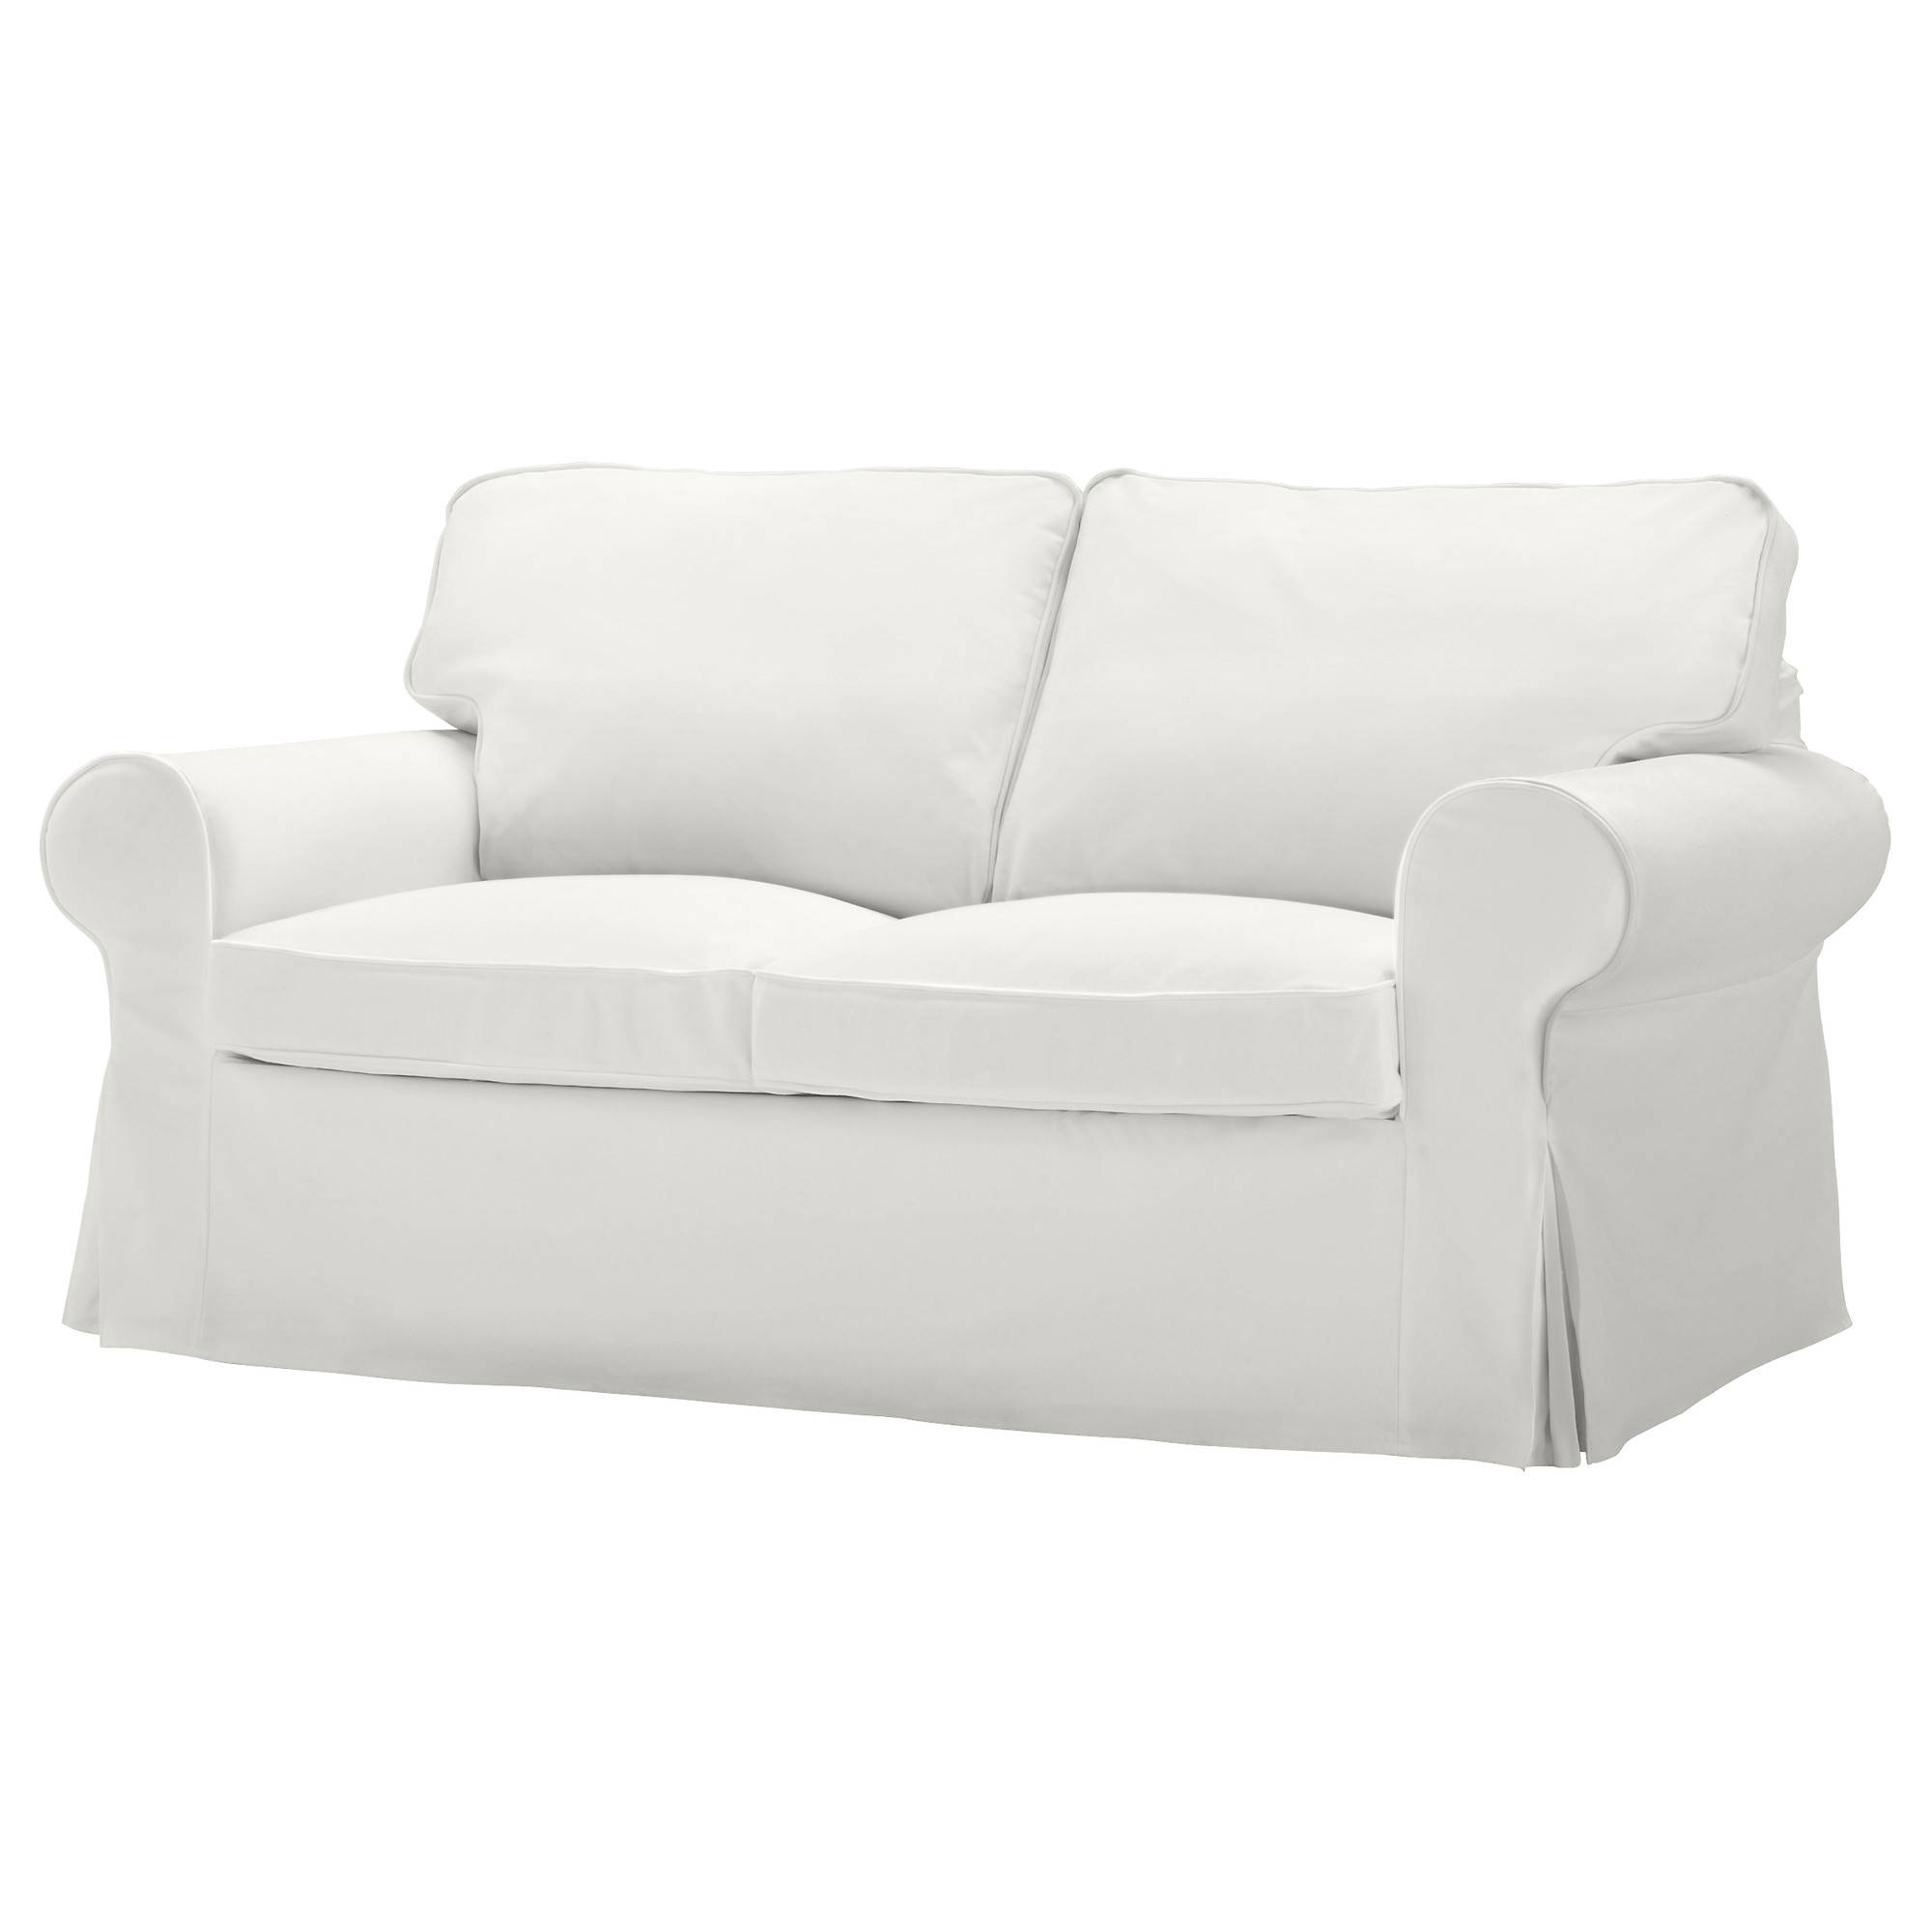 pillows love in shipping loveseat home catherine sleeper with free khaki today fabric product seat acme overstock garden